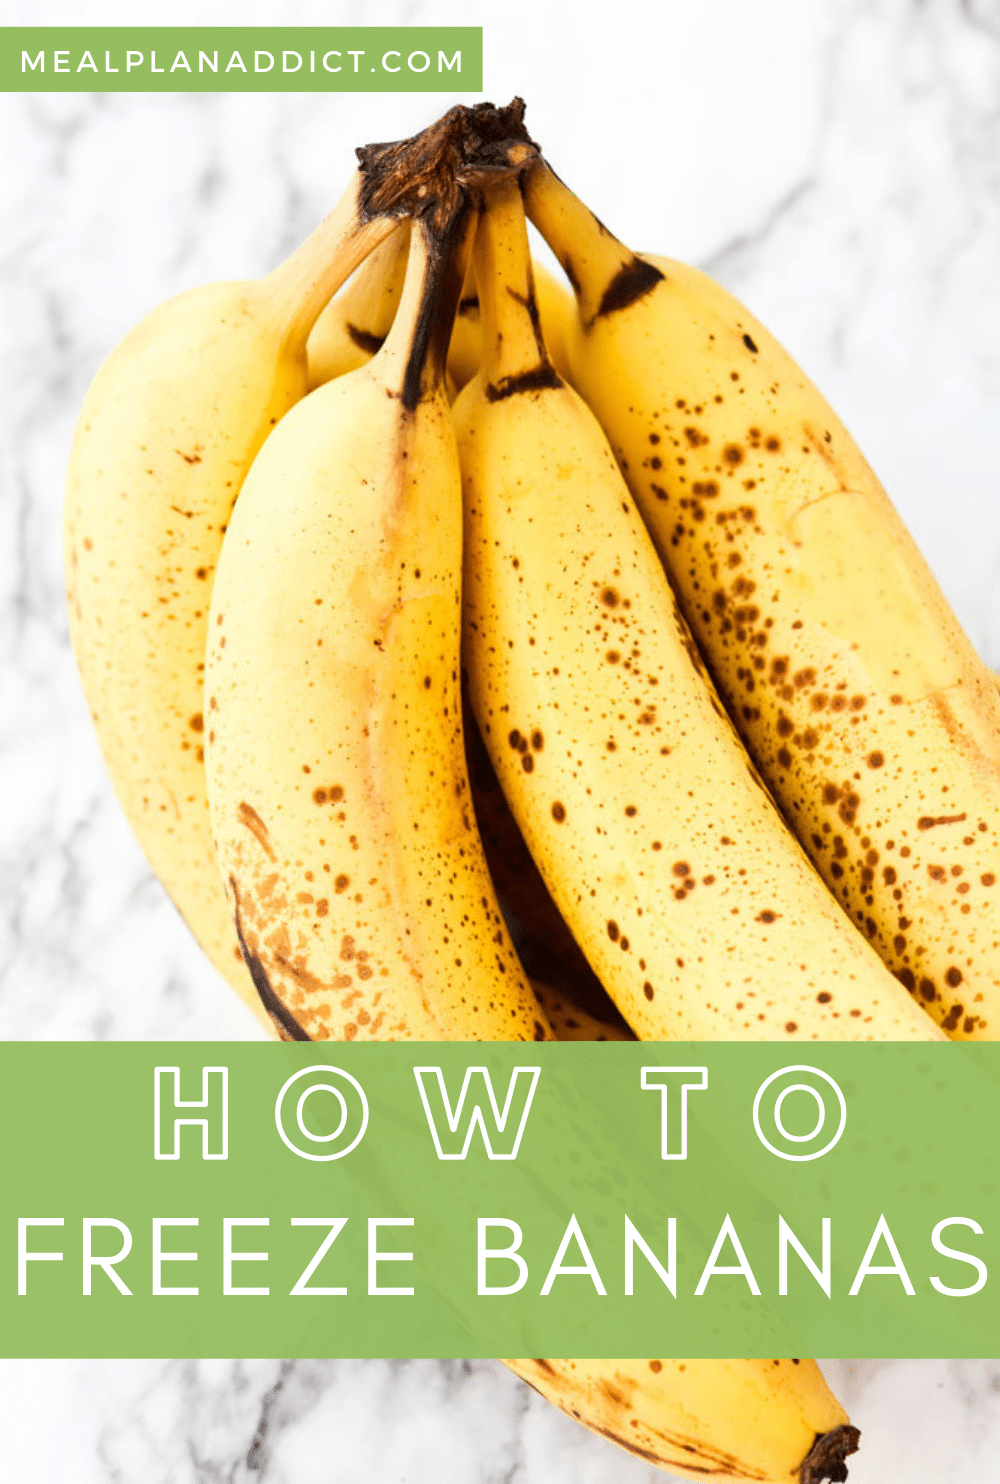 How to Freeze Bananas for Smoothies | Meal Plan Addict